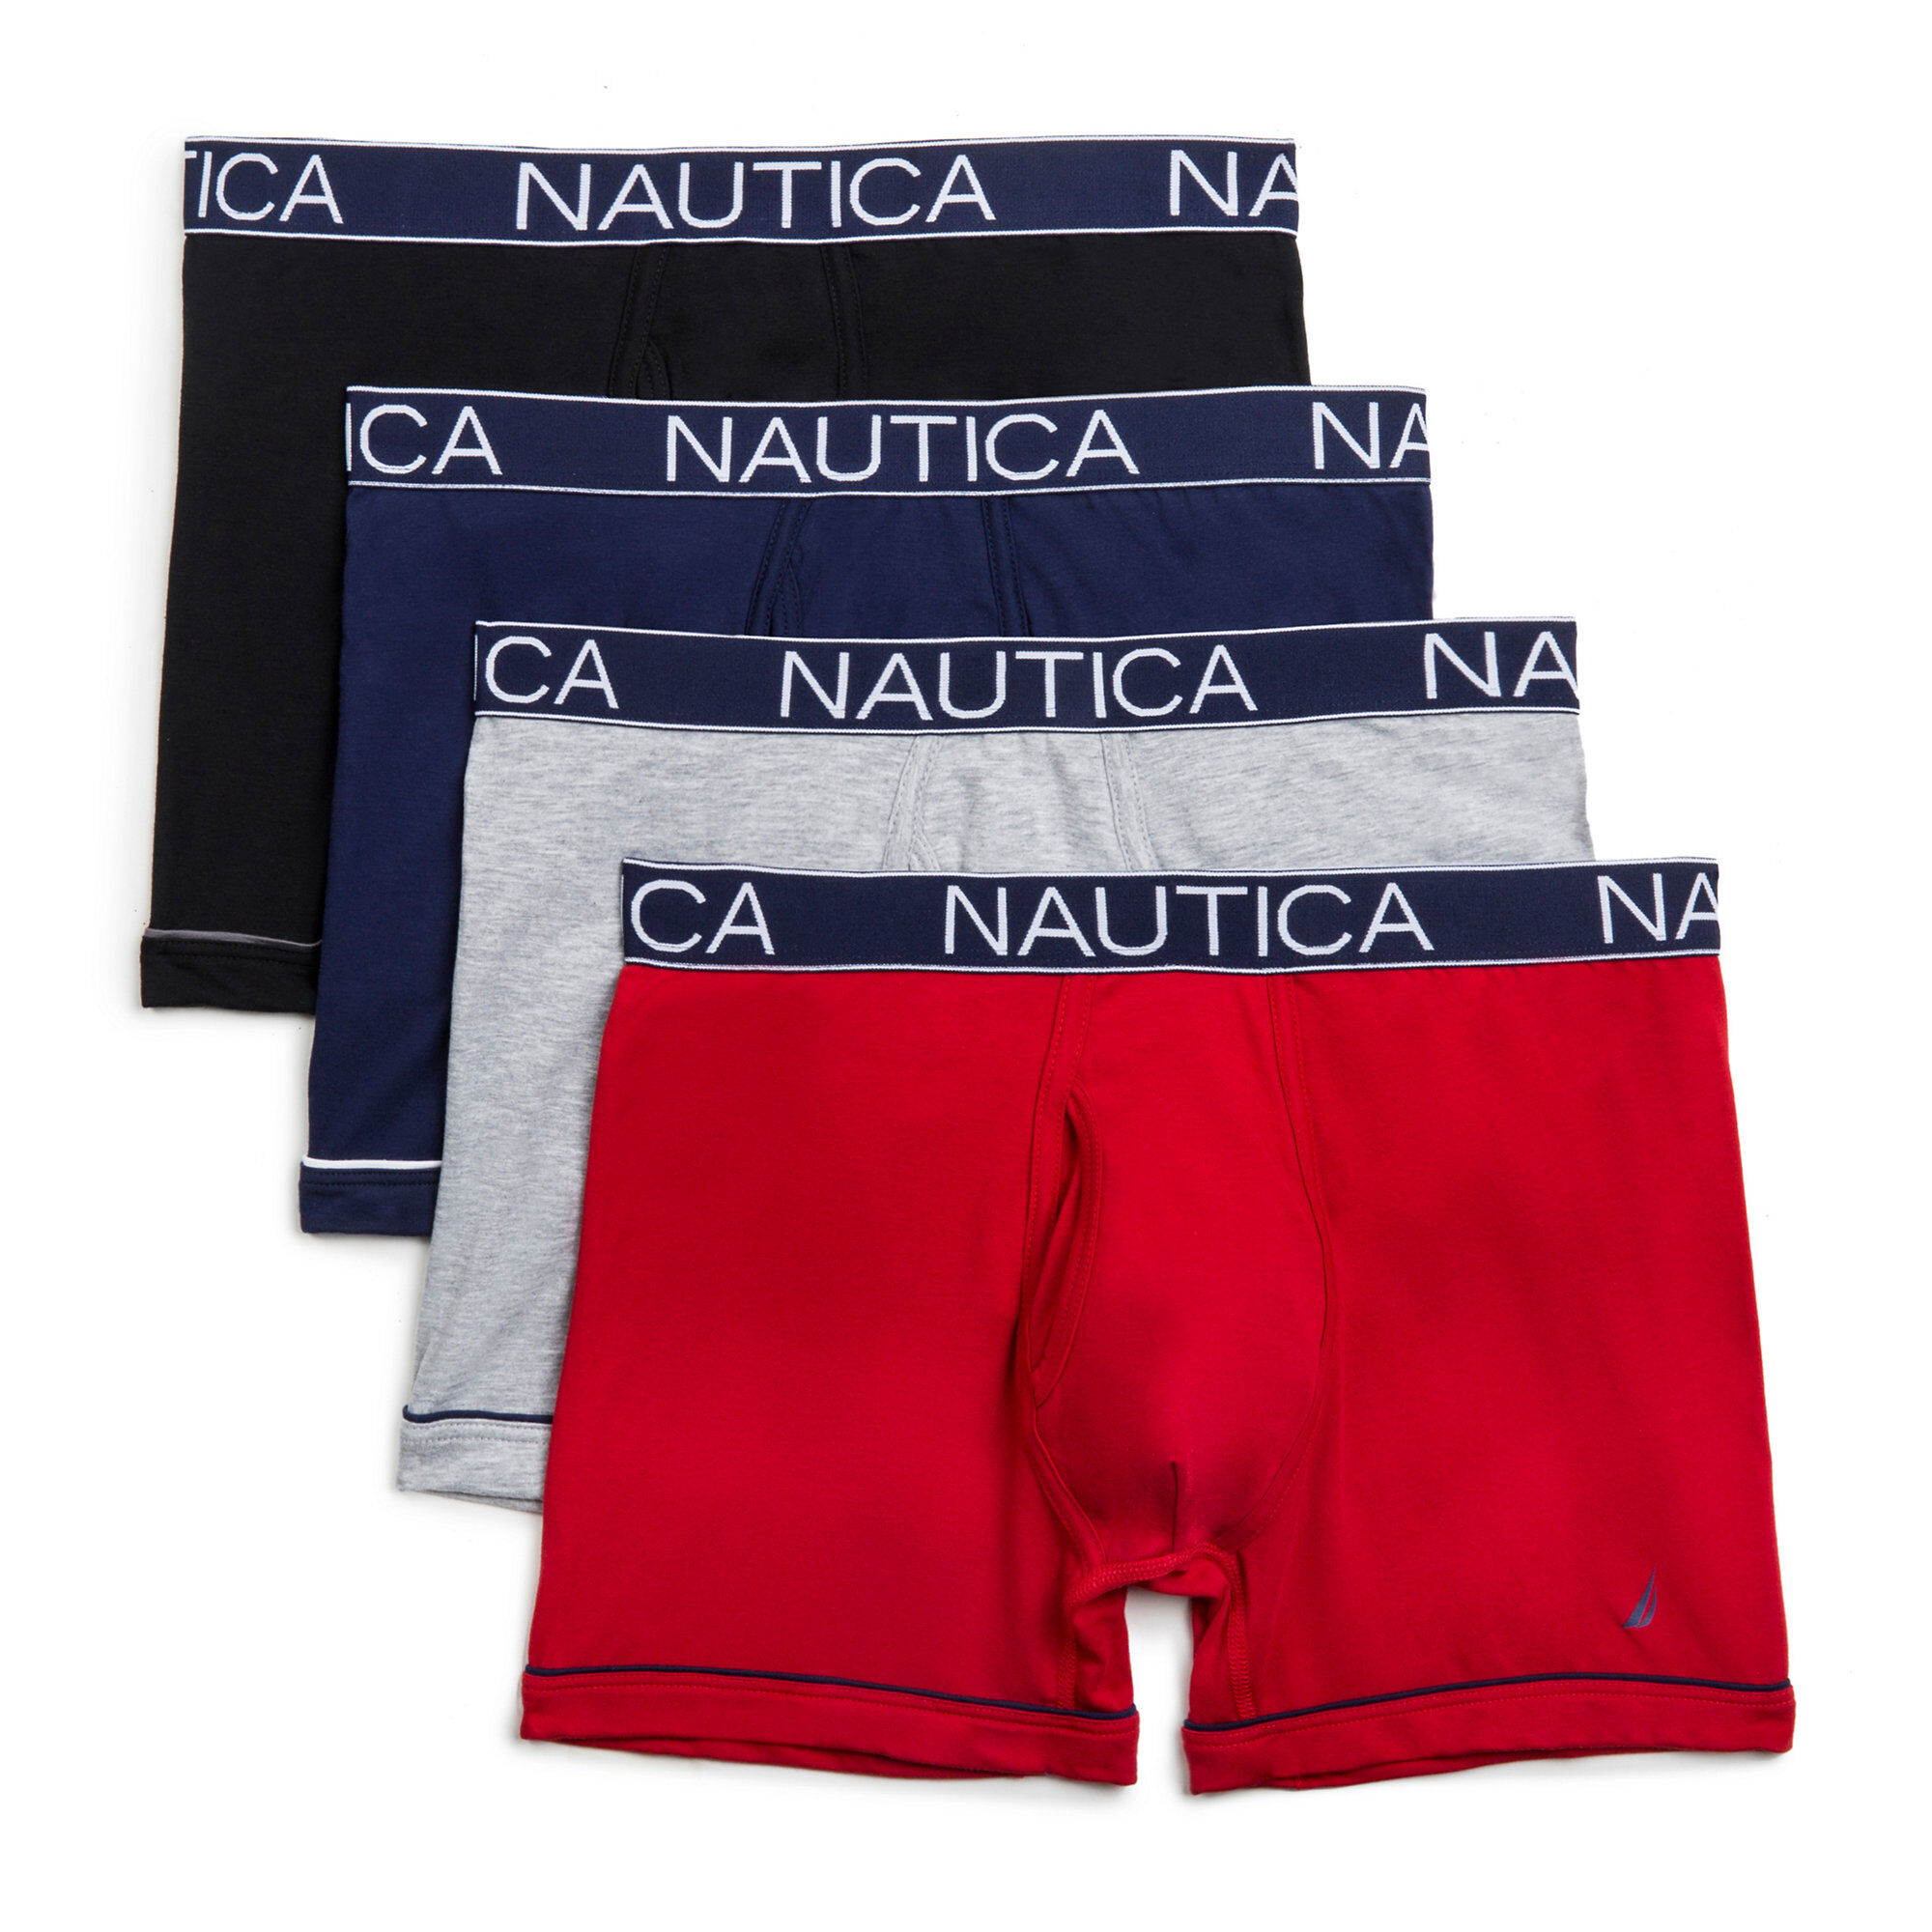 7e142cda5bea Performance Boxer Briefs, 4-Pack | Nautica